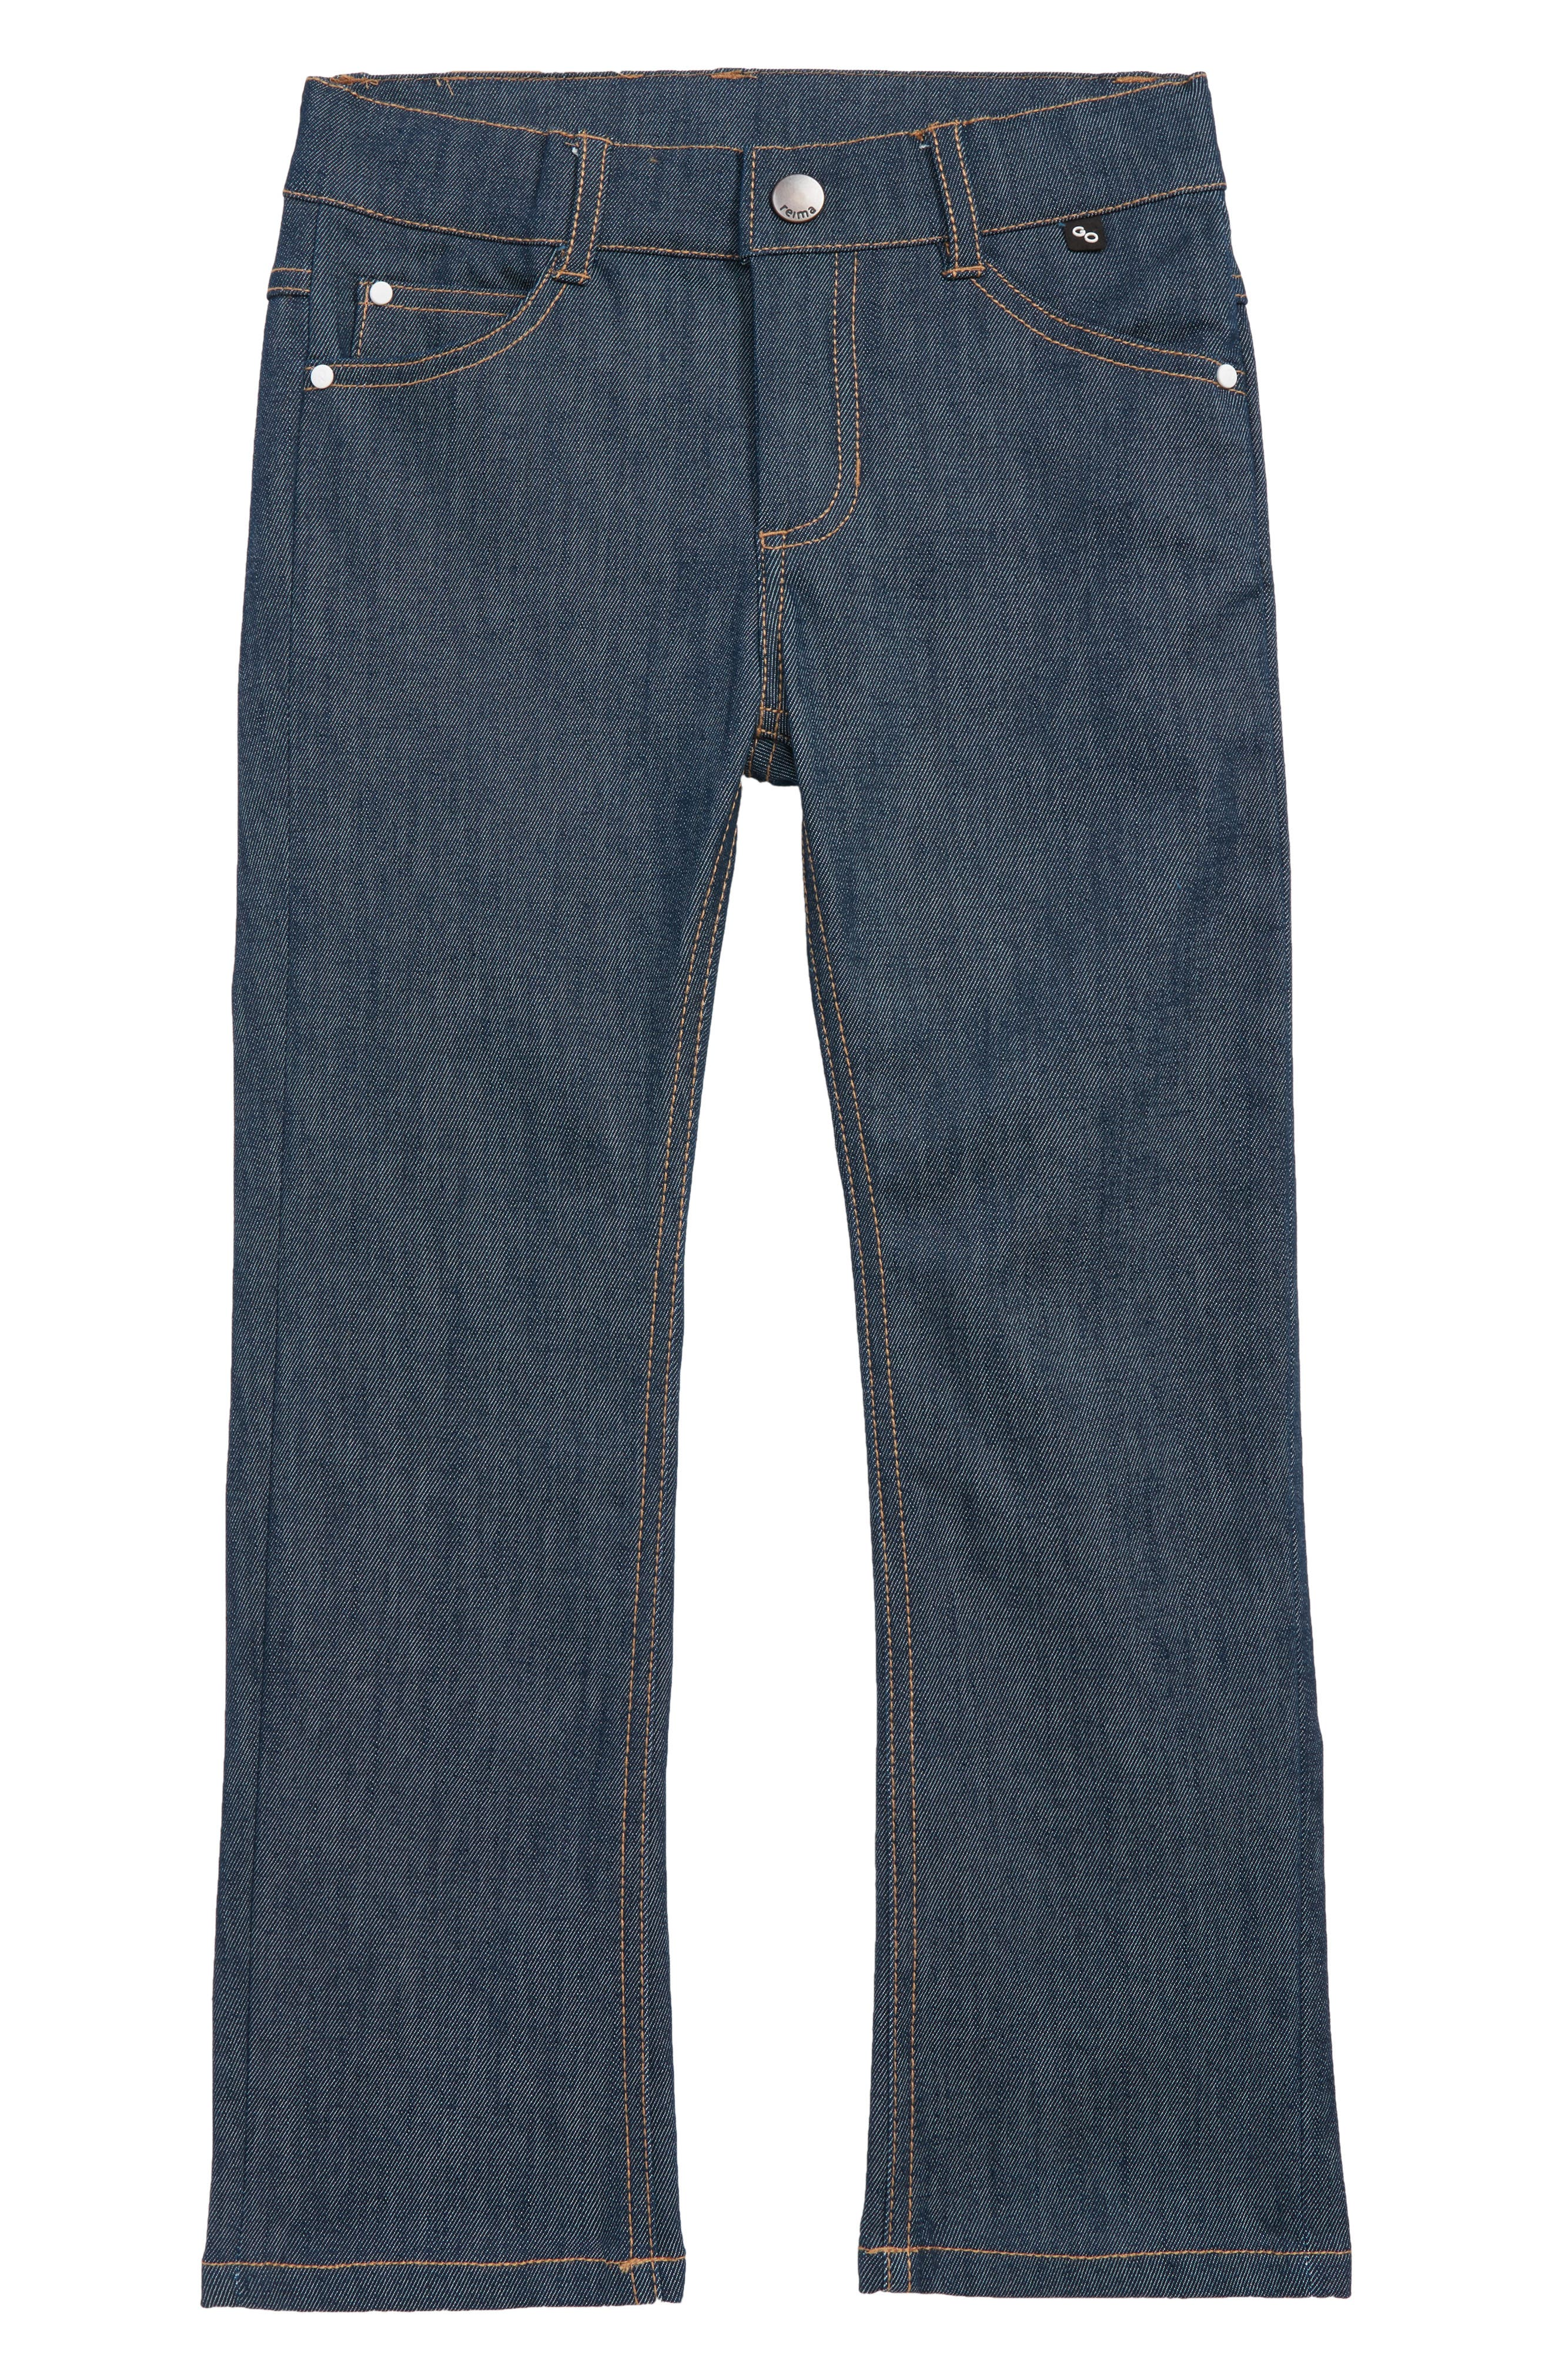 Trick Thermolite<sup>®</sup> Jeans,                             Main thumbnail 1, color,                             NAVY